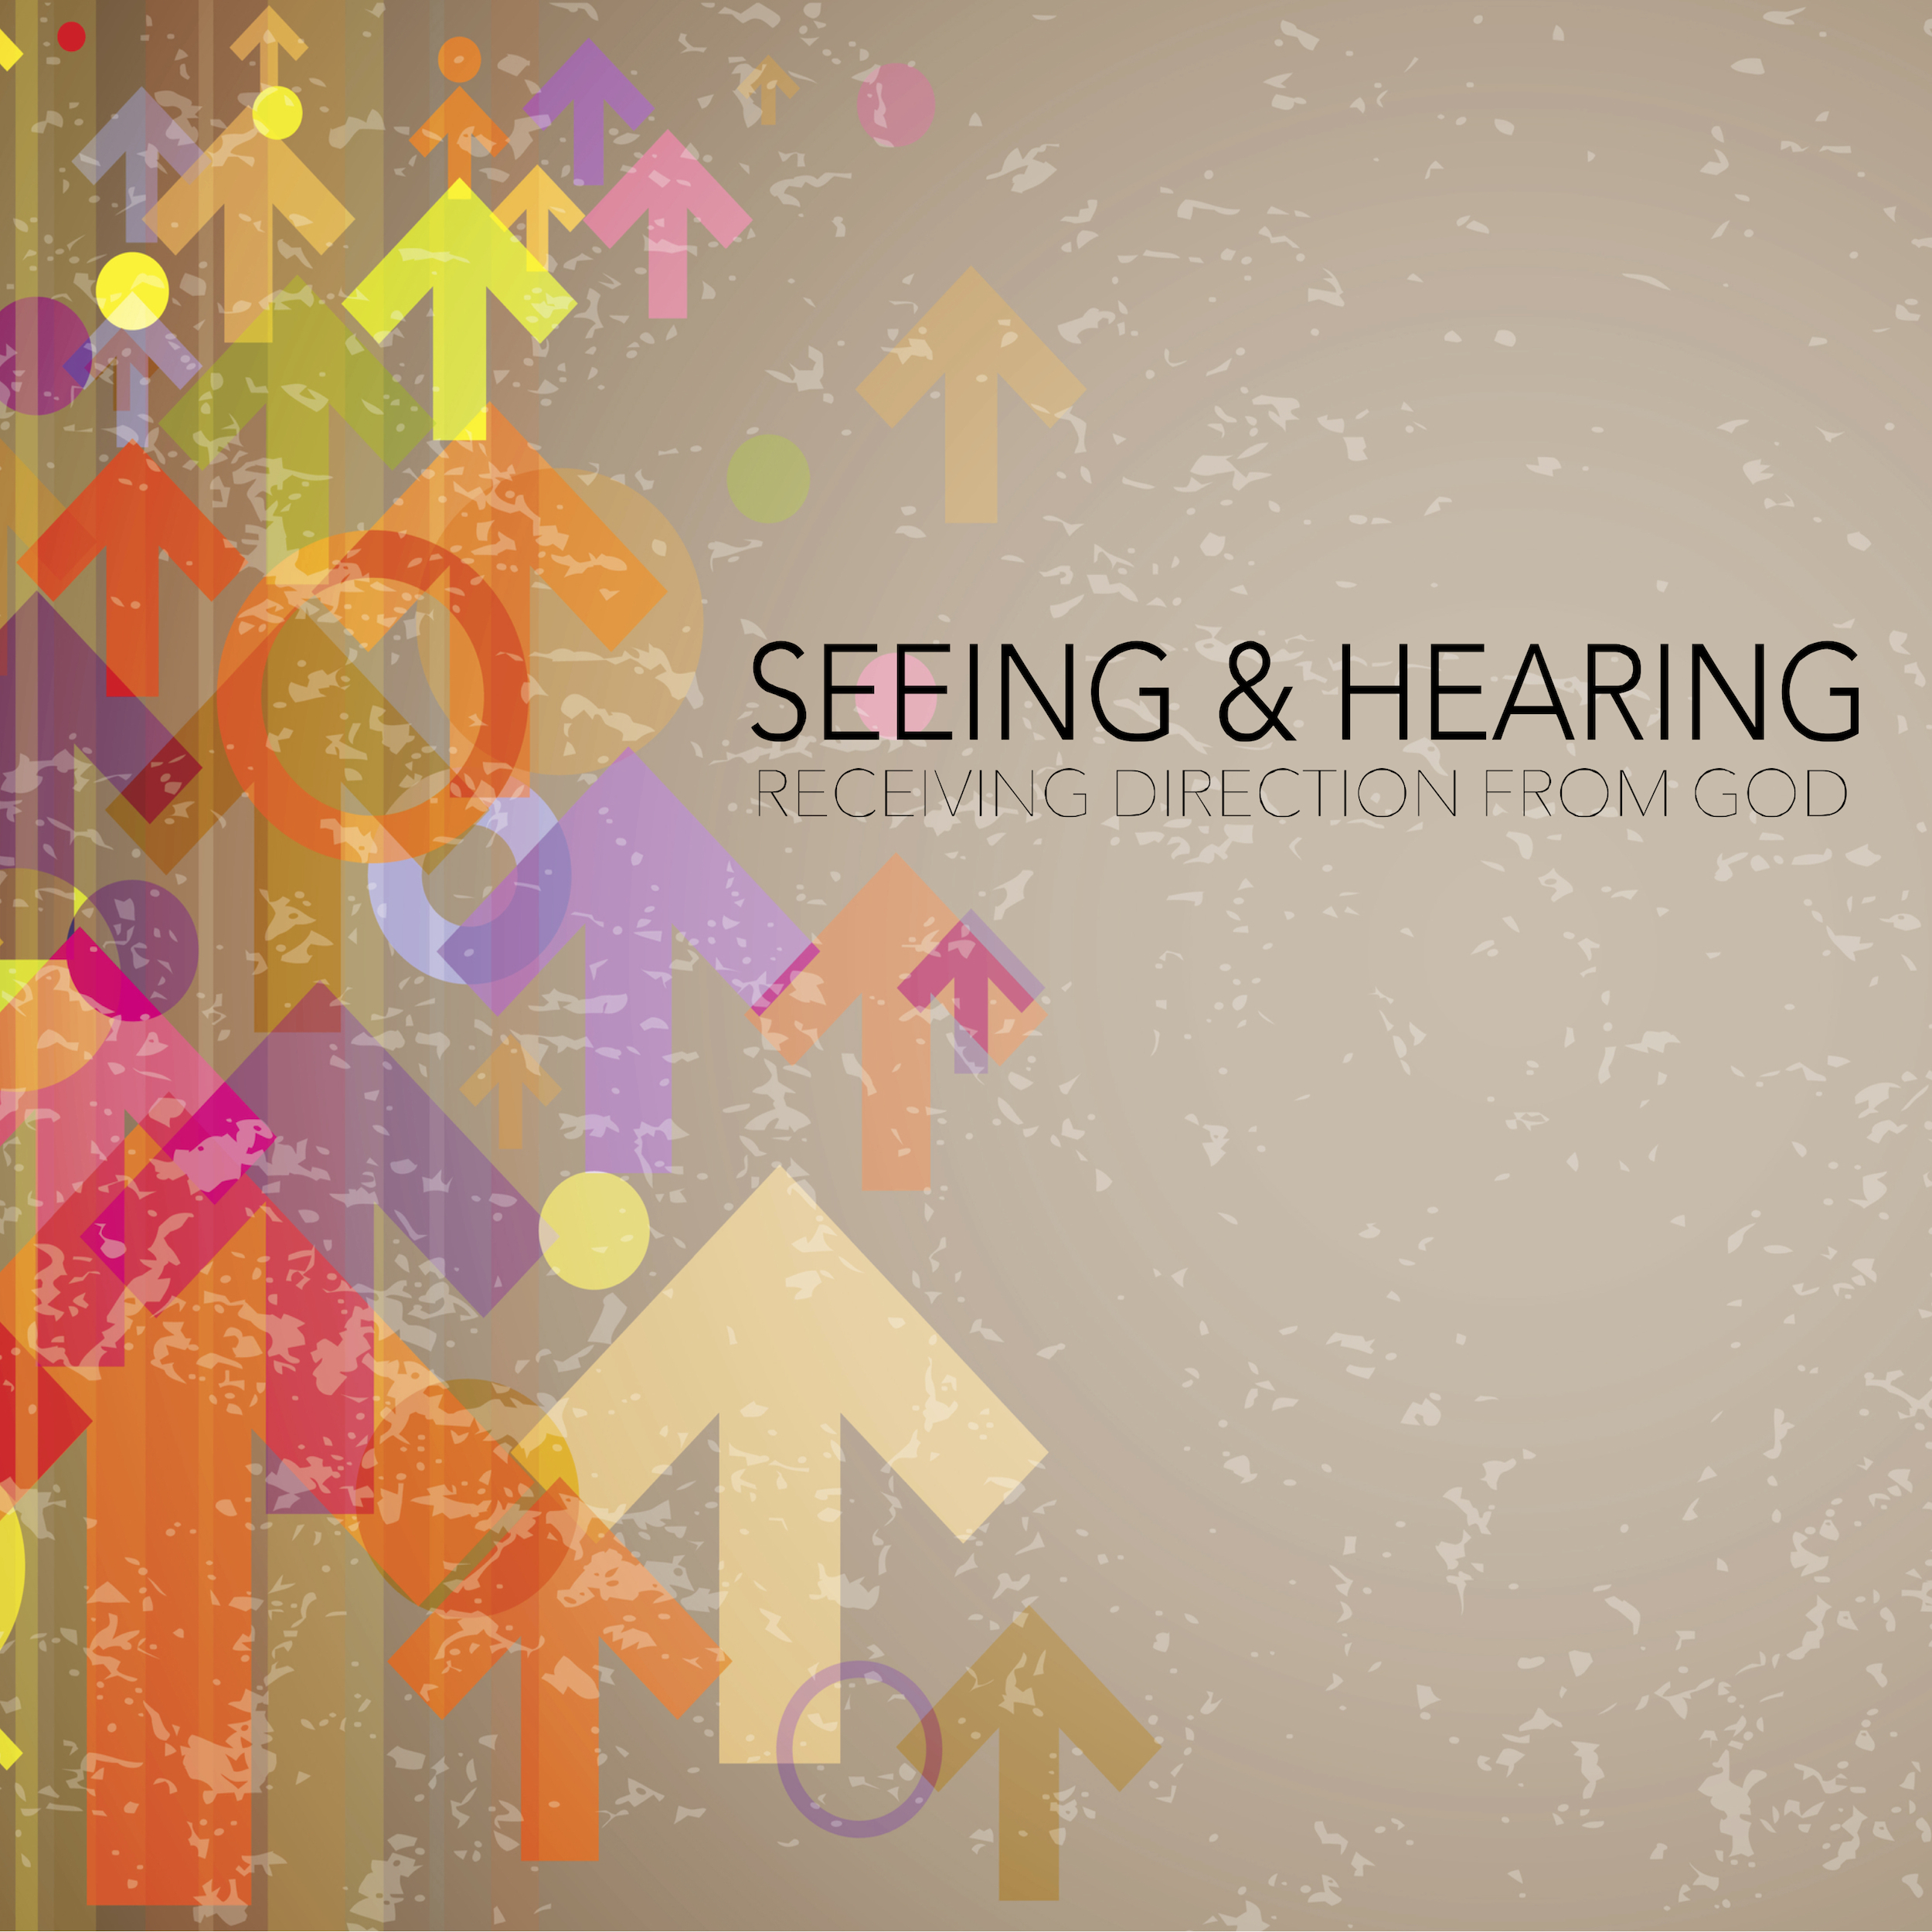 Seeing and Hearing 1.jpg